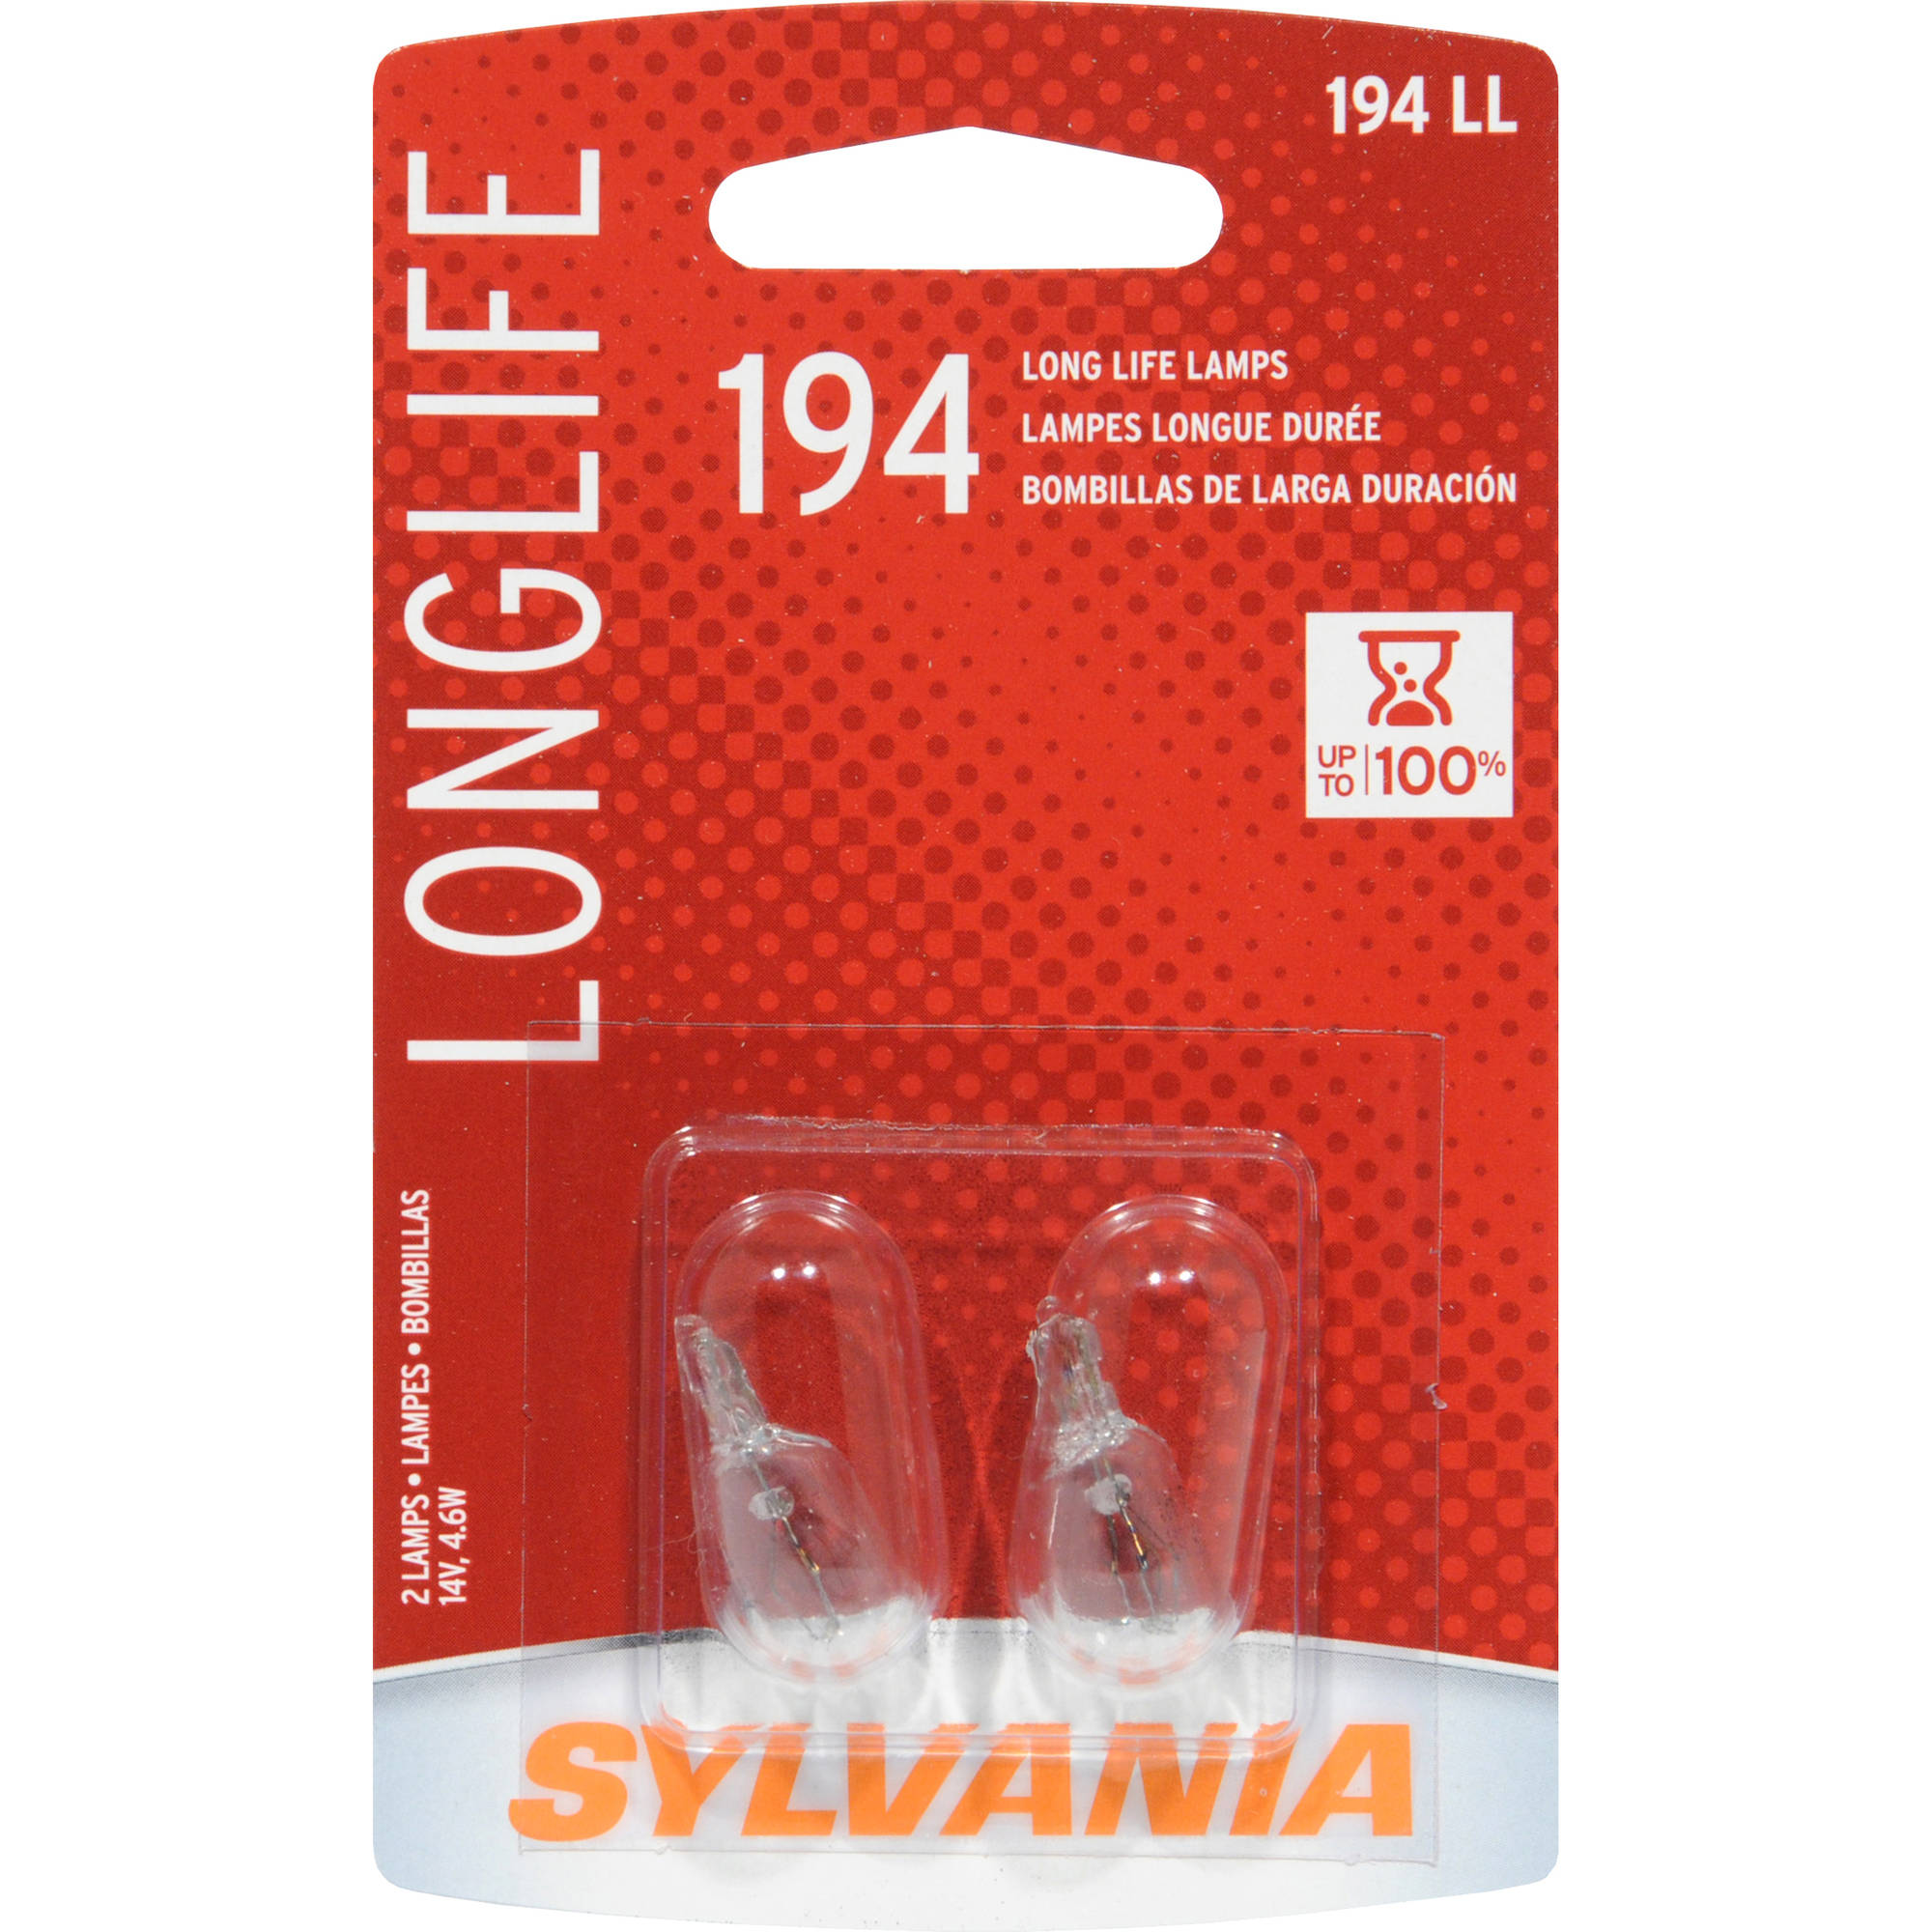 Sylvania 194 Long-Life Miniature Bulb, Twin Pack